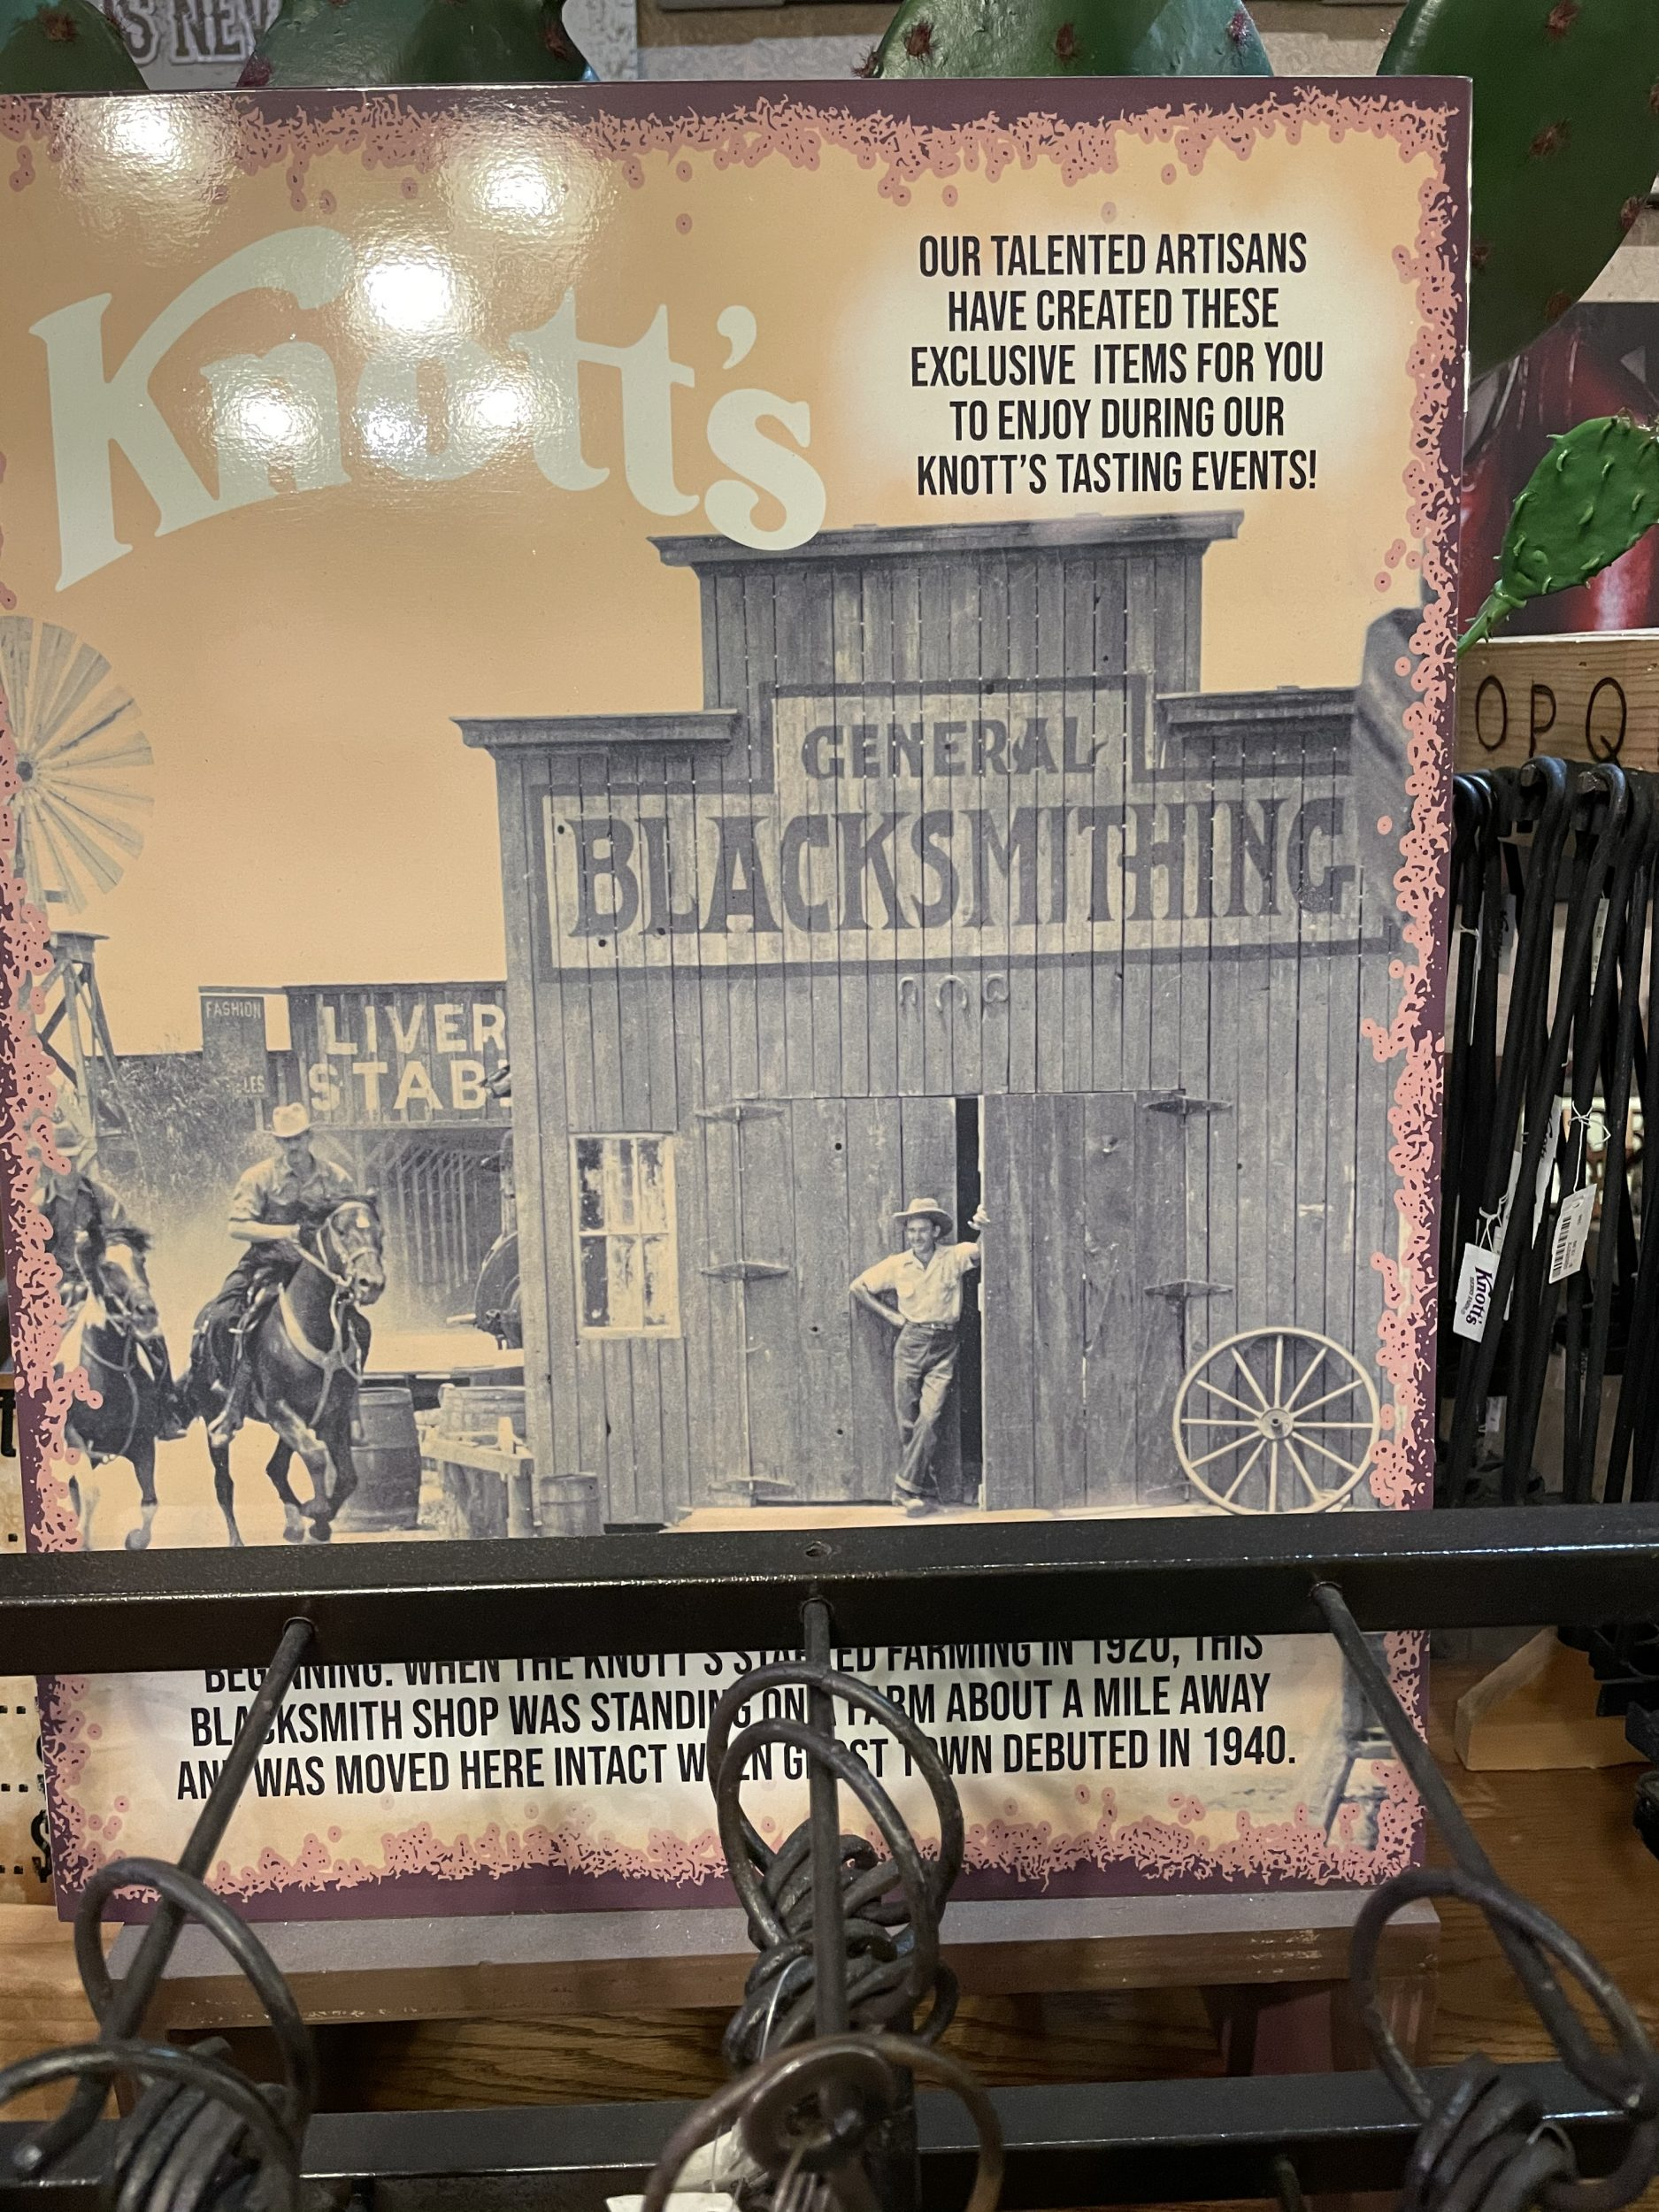 The blacksmith shop is one of the historical buildings at Knott's Berry Farm